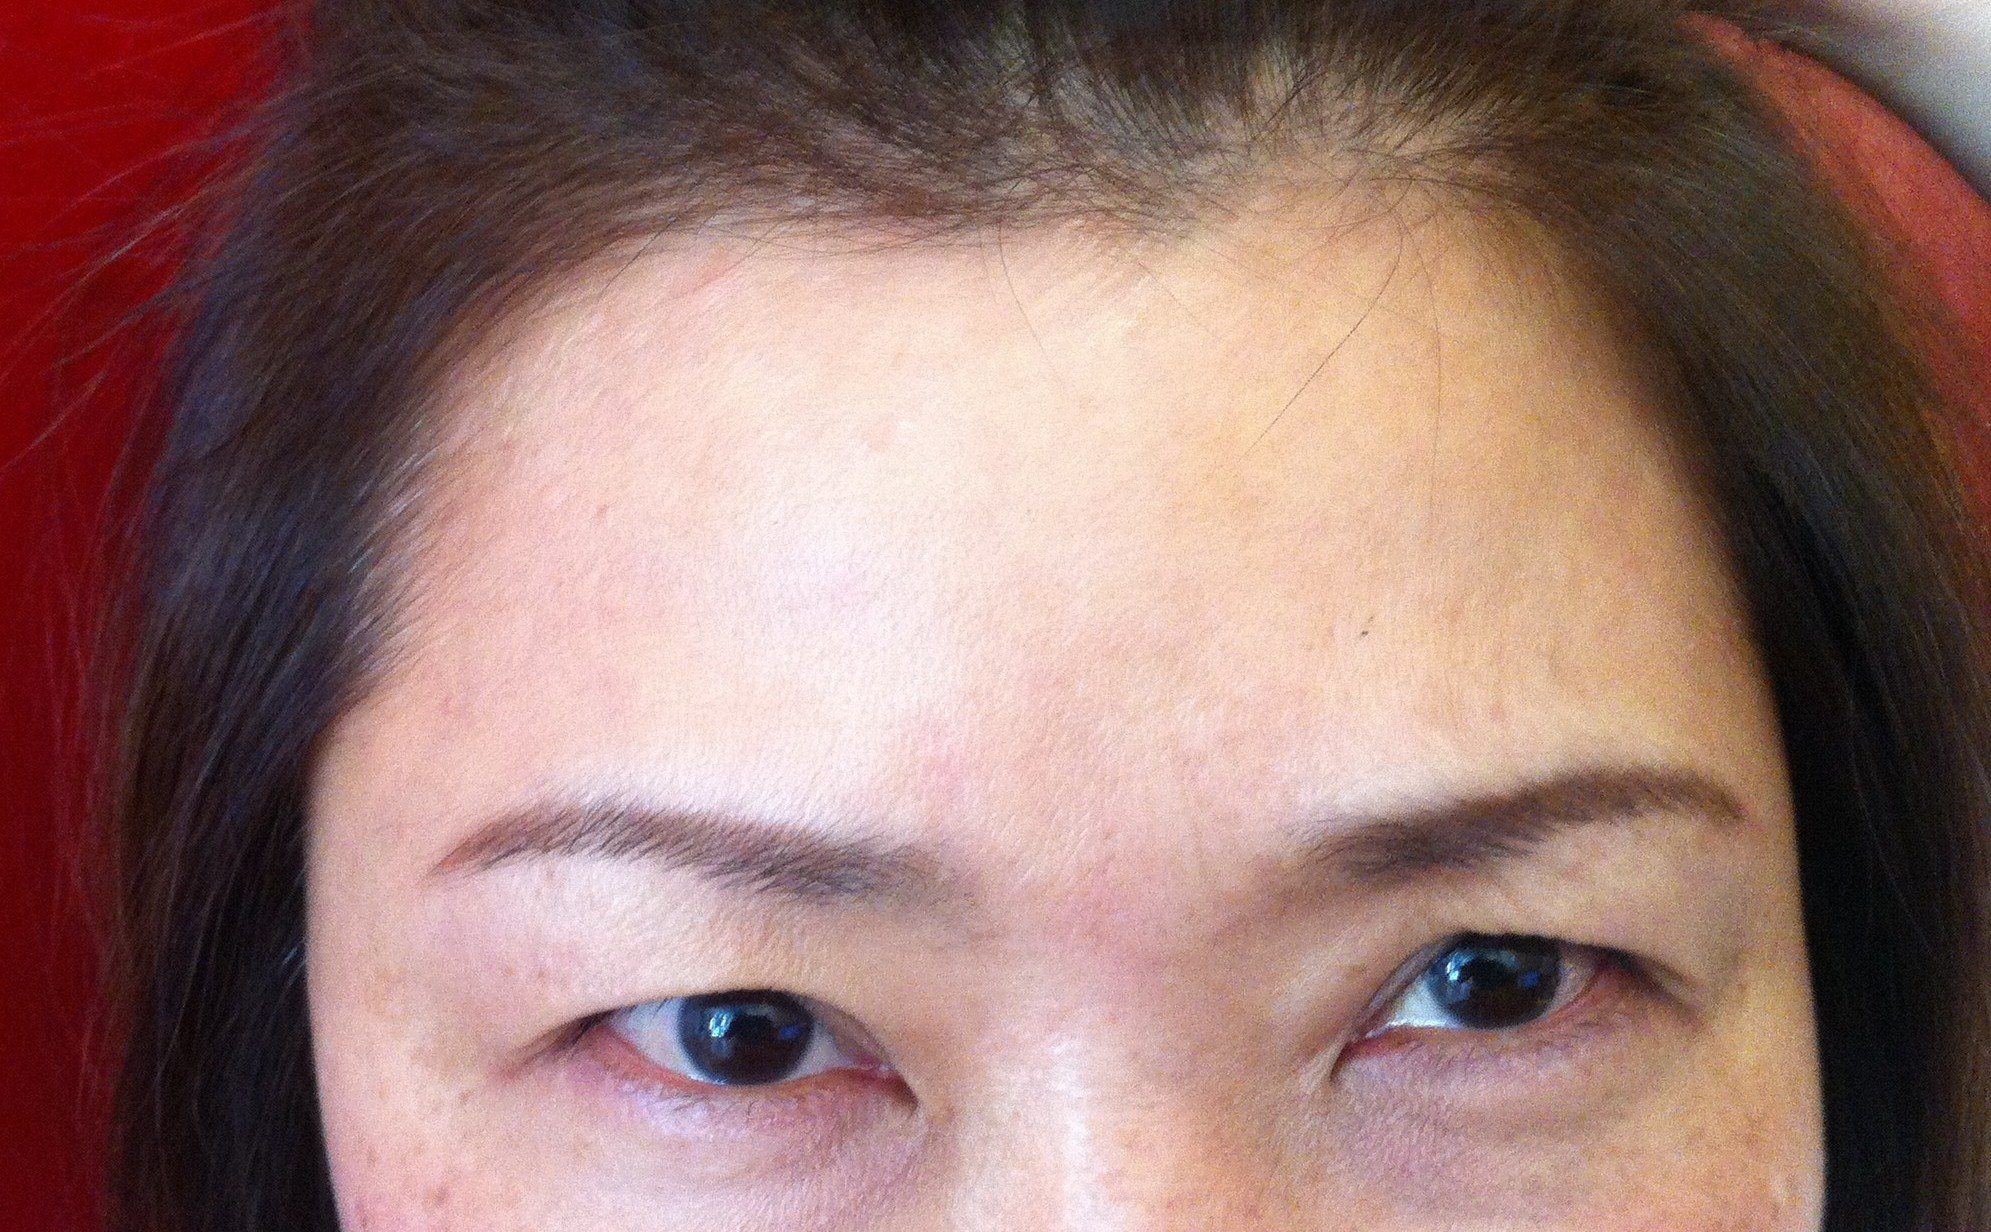 After Botox Injection Of Forehead Lines